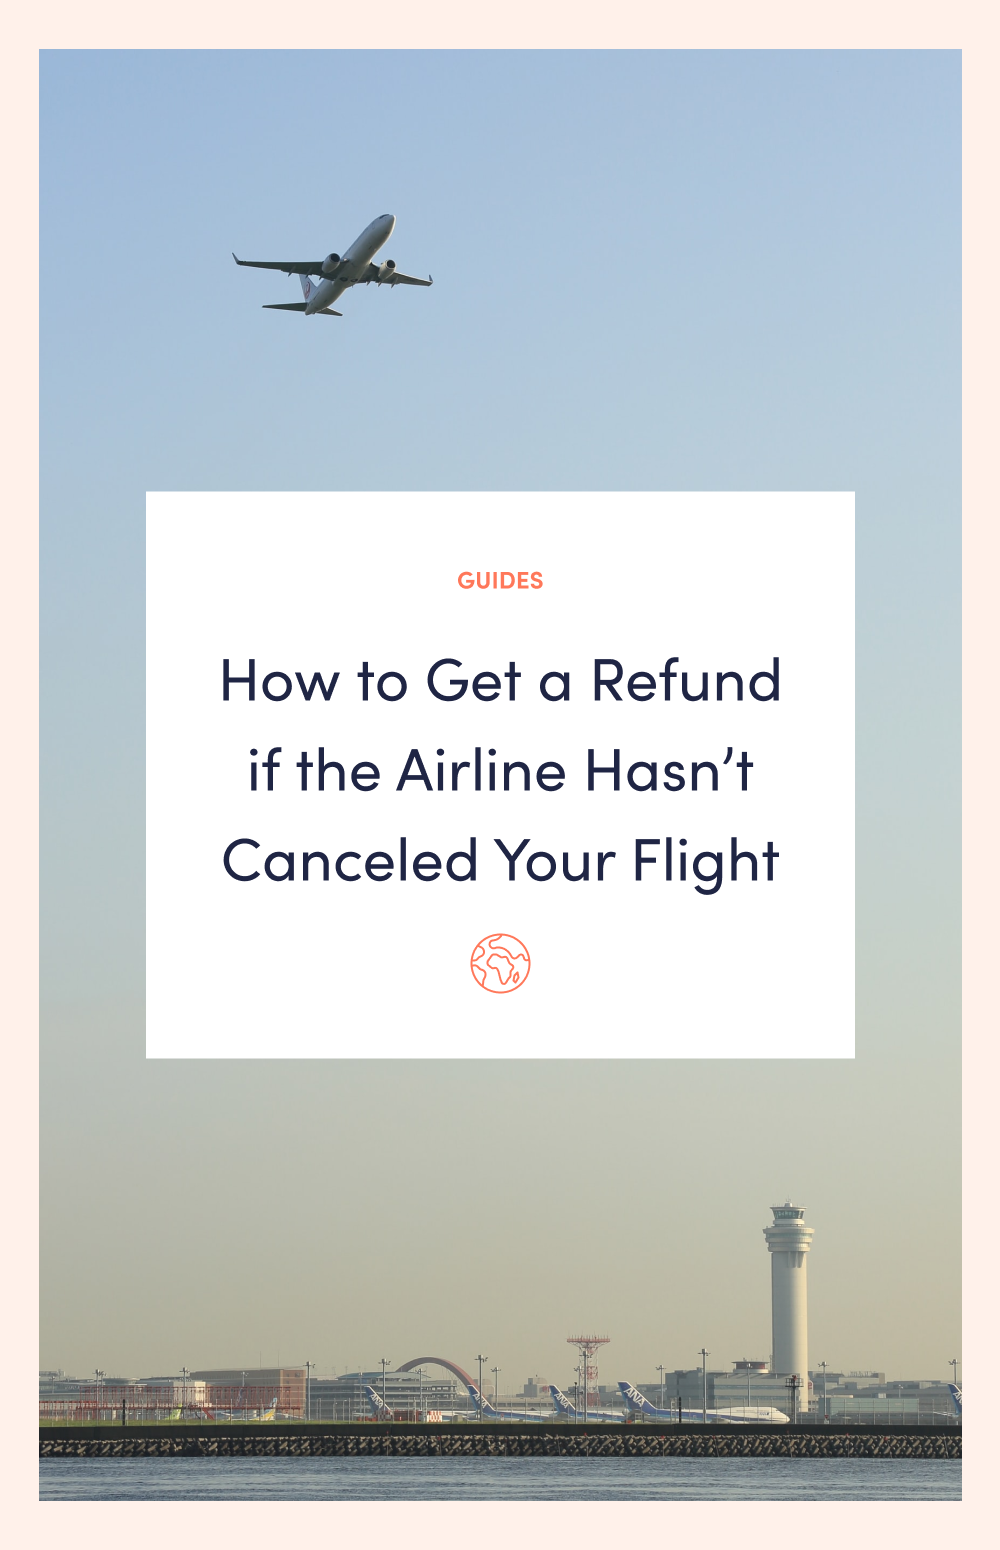 Trying to get a refund from an airline? This guide will help. #travelhacks #traveltips #cheapflights #traveladvice #travel #flightdealas #domestictravel #internationaltravel #travelinspiration